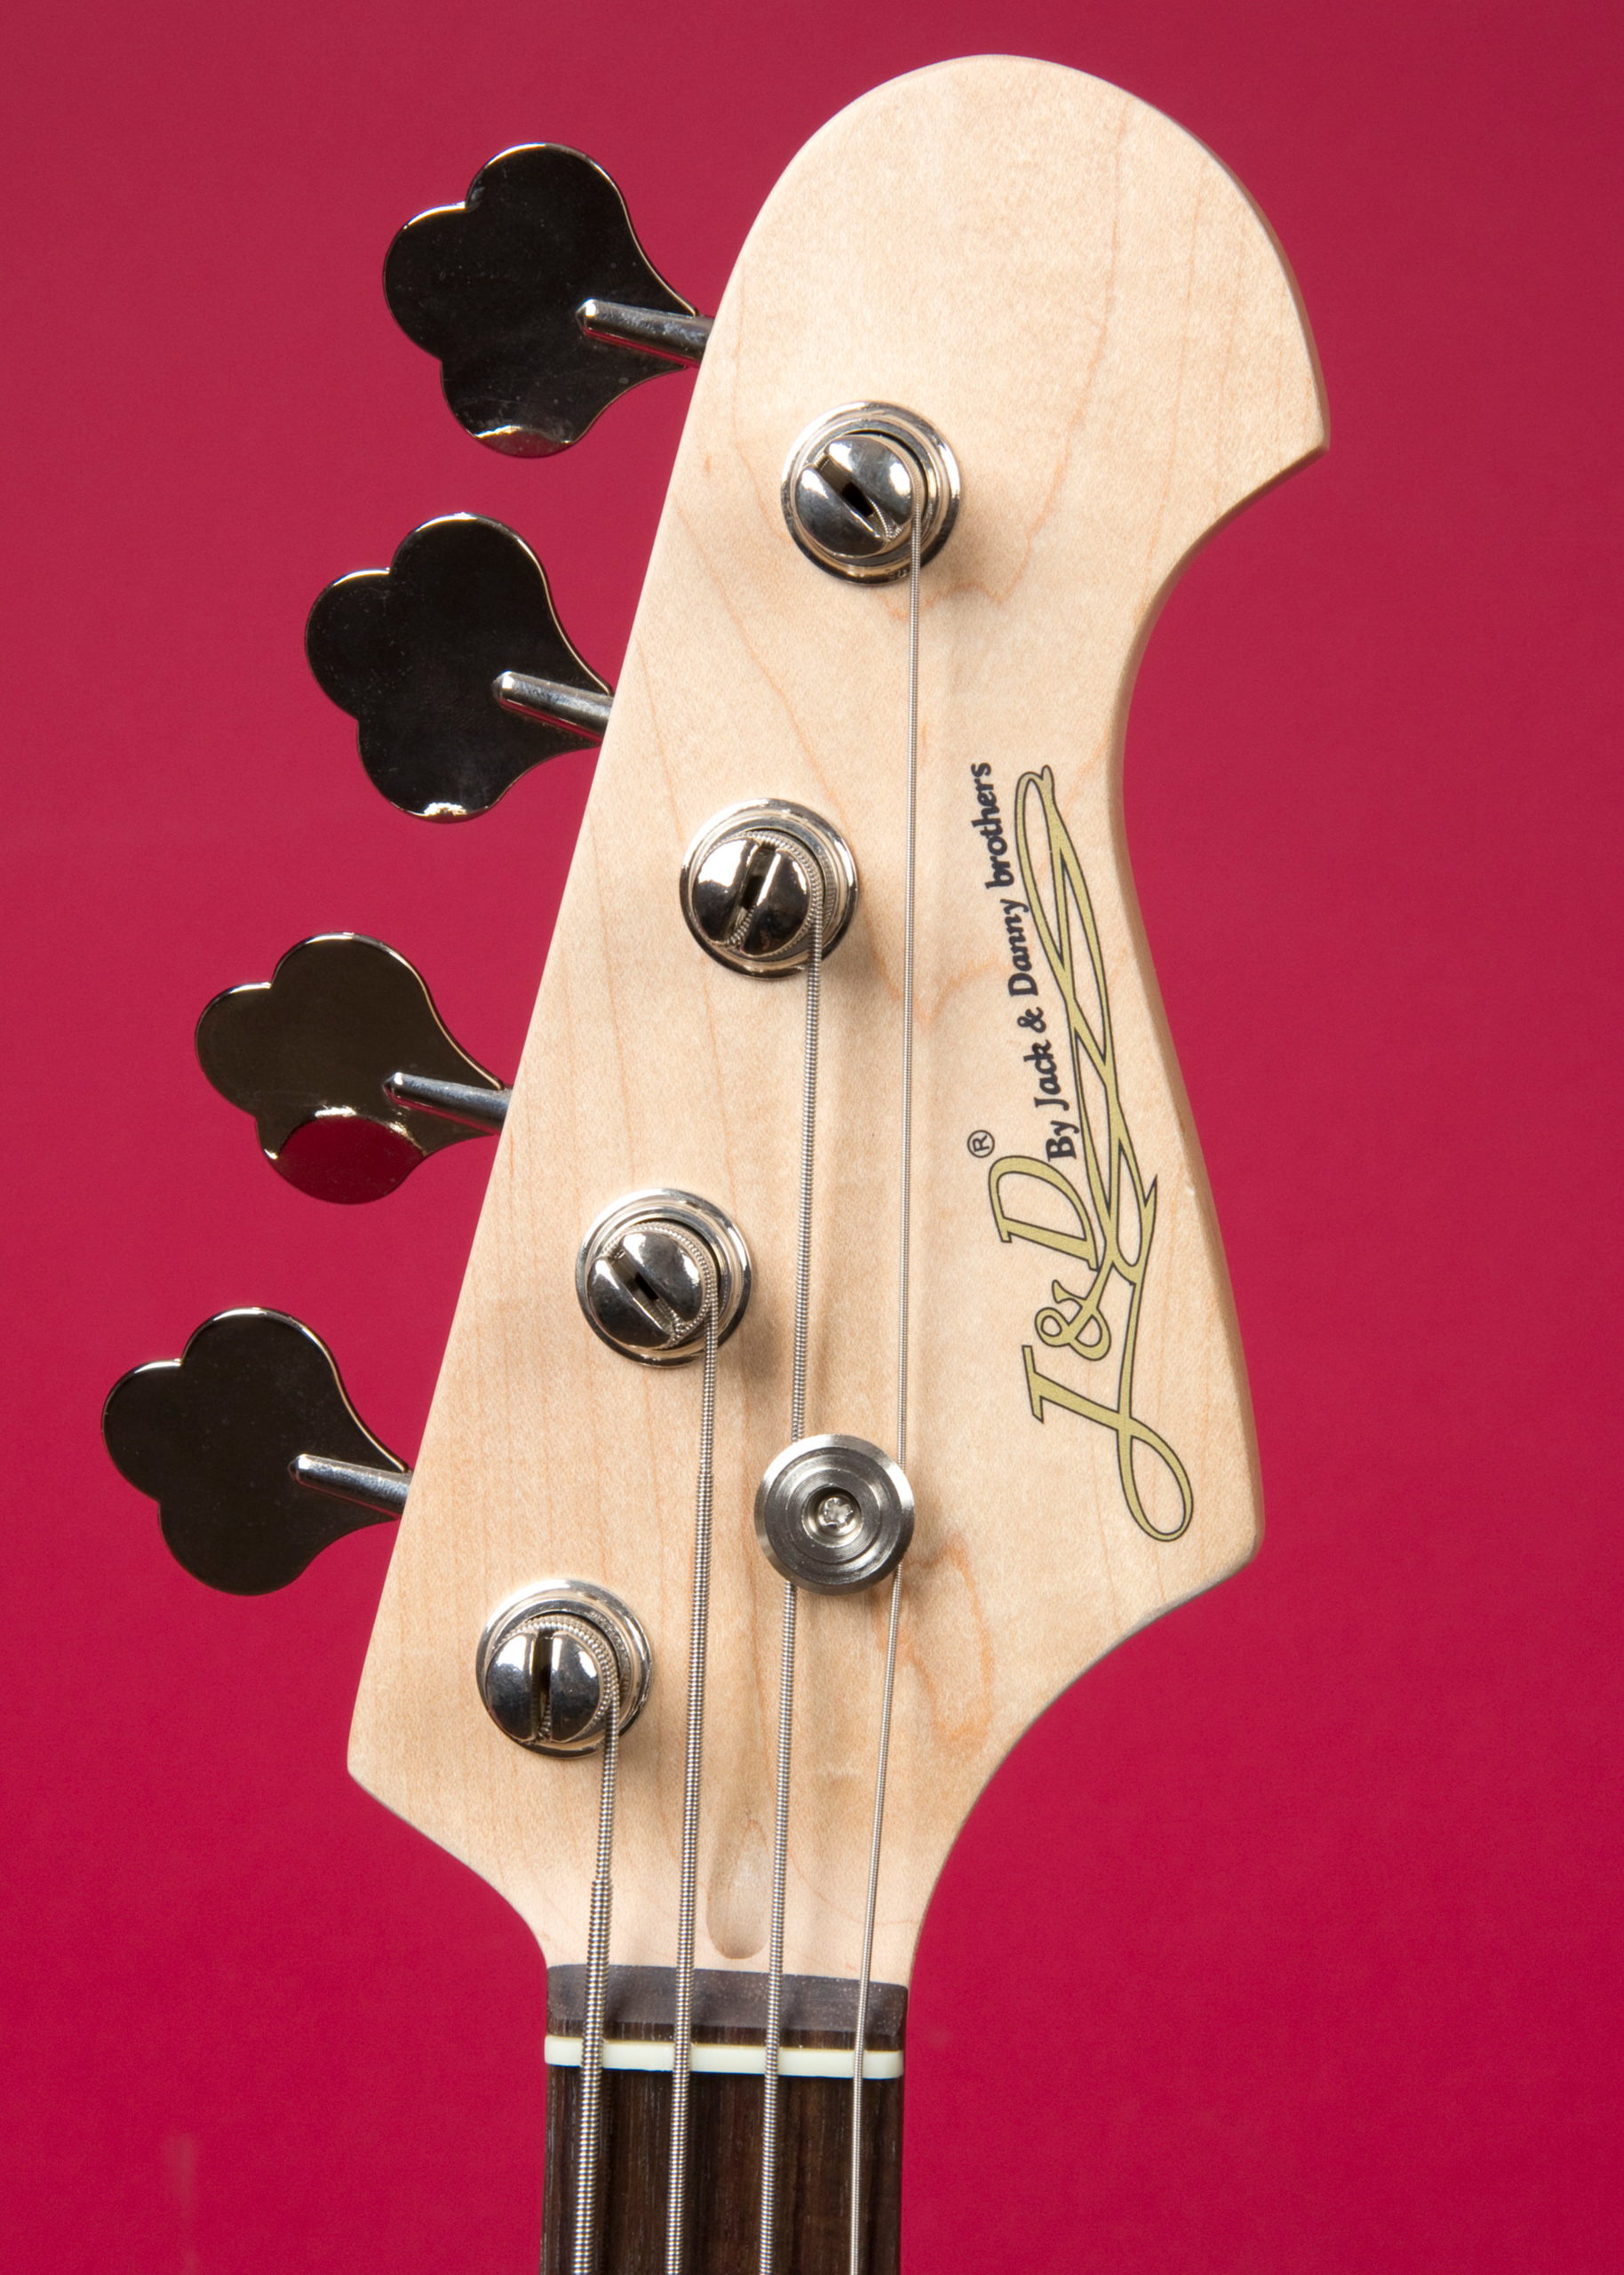 JACK & DANNY PB Black High Gloss Headstock Detail